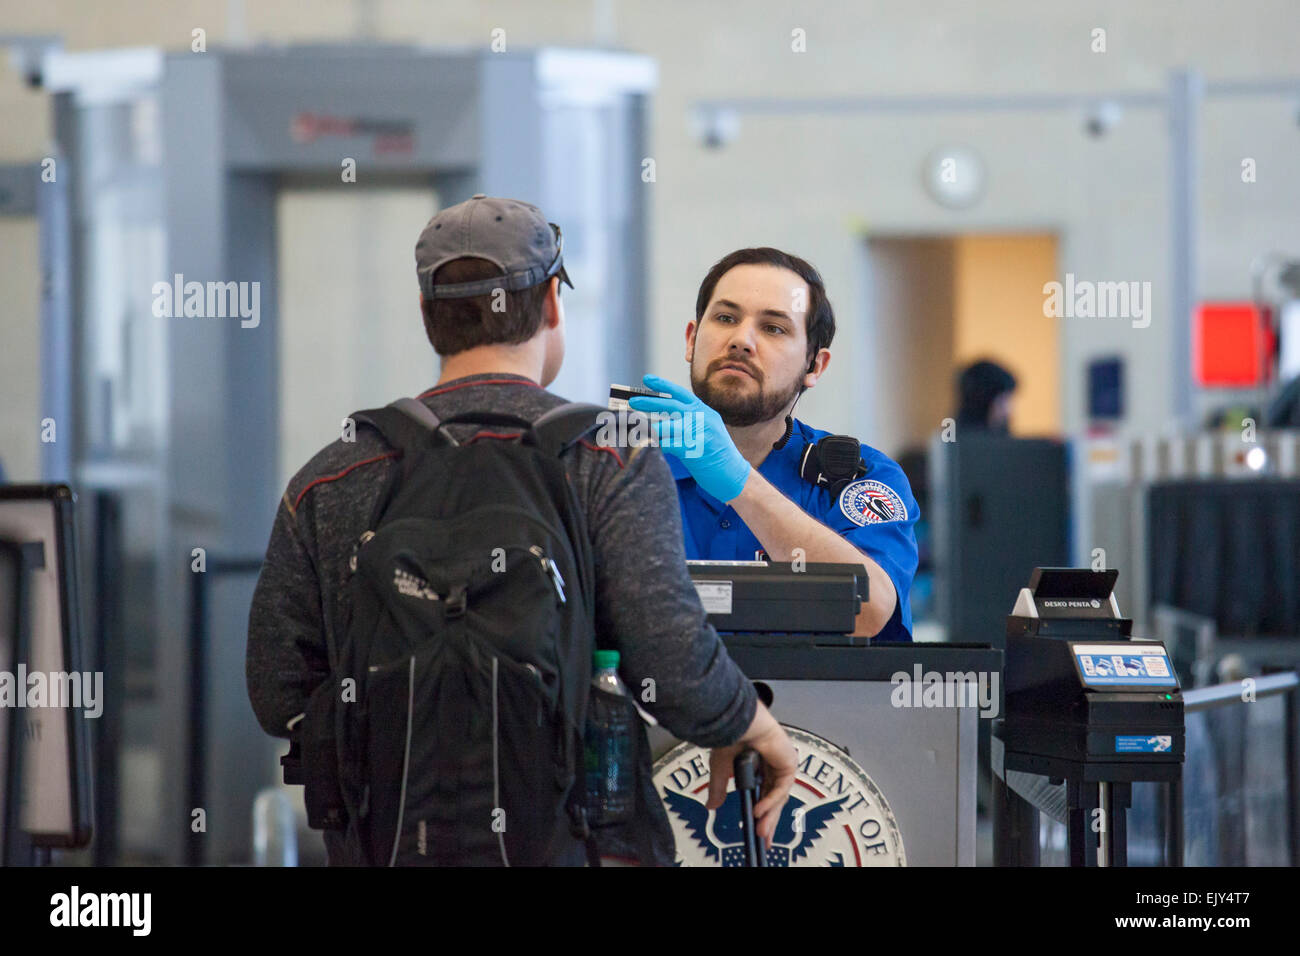 c8alamycomcompejy4t7romulus michigan a transp - Transportation Security Officer